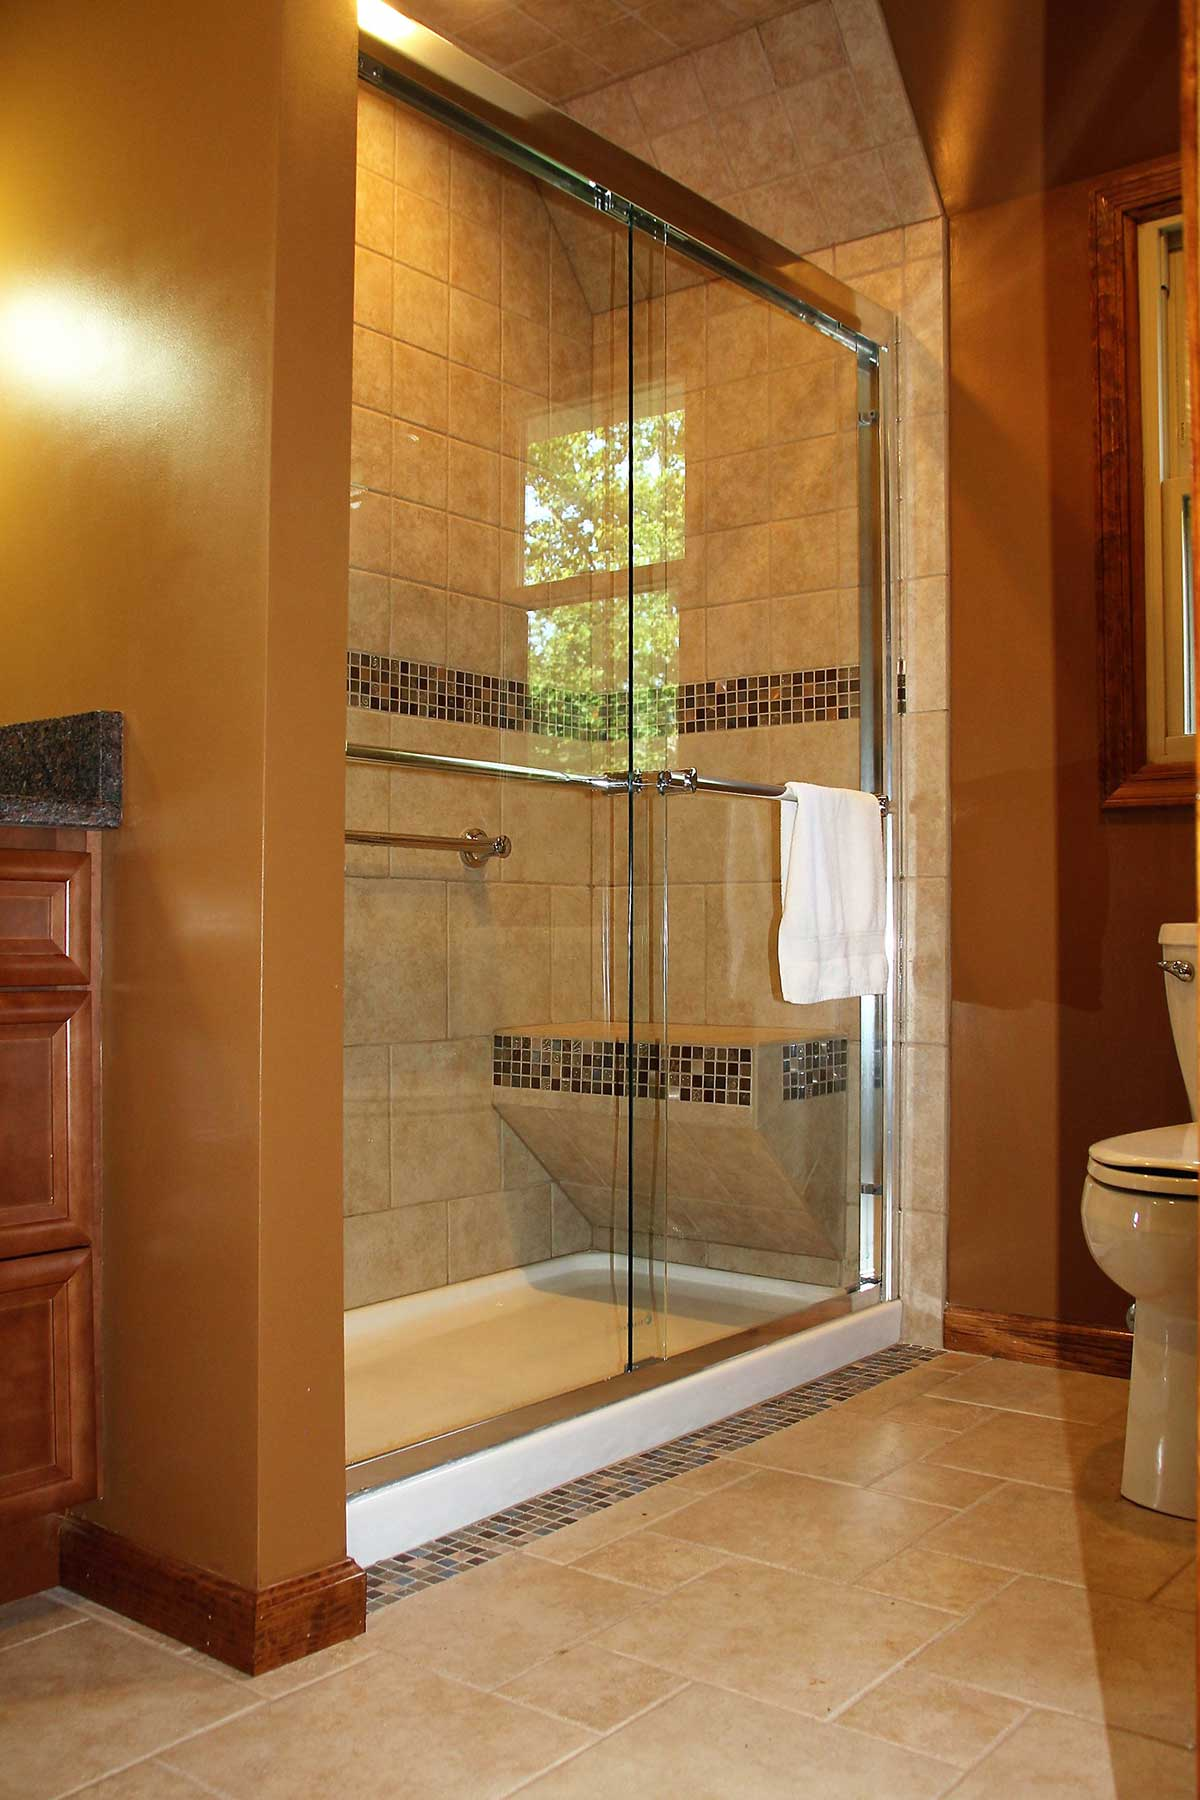 View of walk-in shower